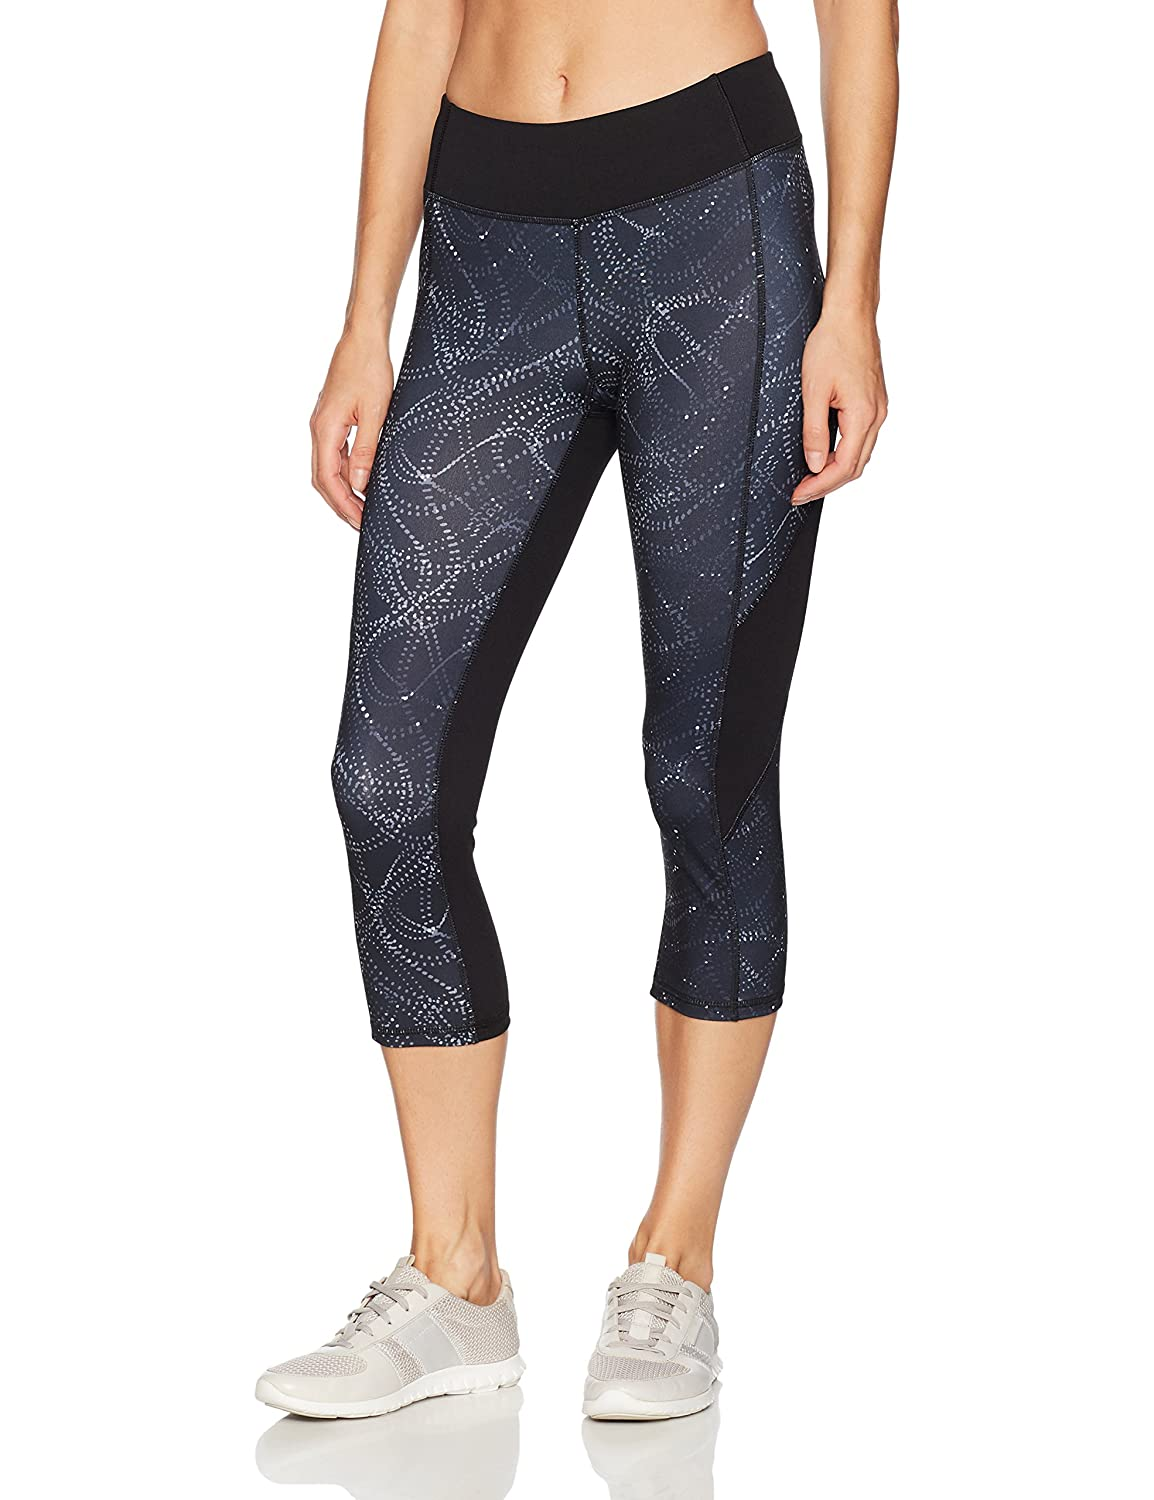 f583a45dbcf38 Hanes Womens Sport Performance Capri Legging Hanes Women's Activewear O9010  Sports & Outdoors